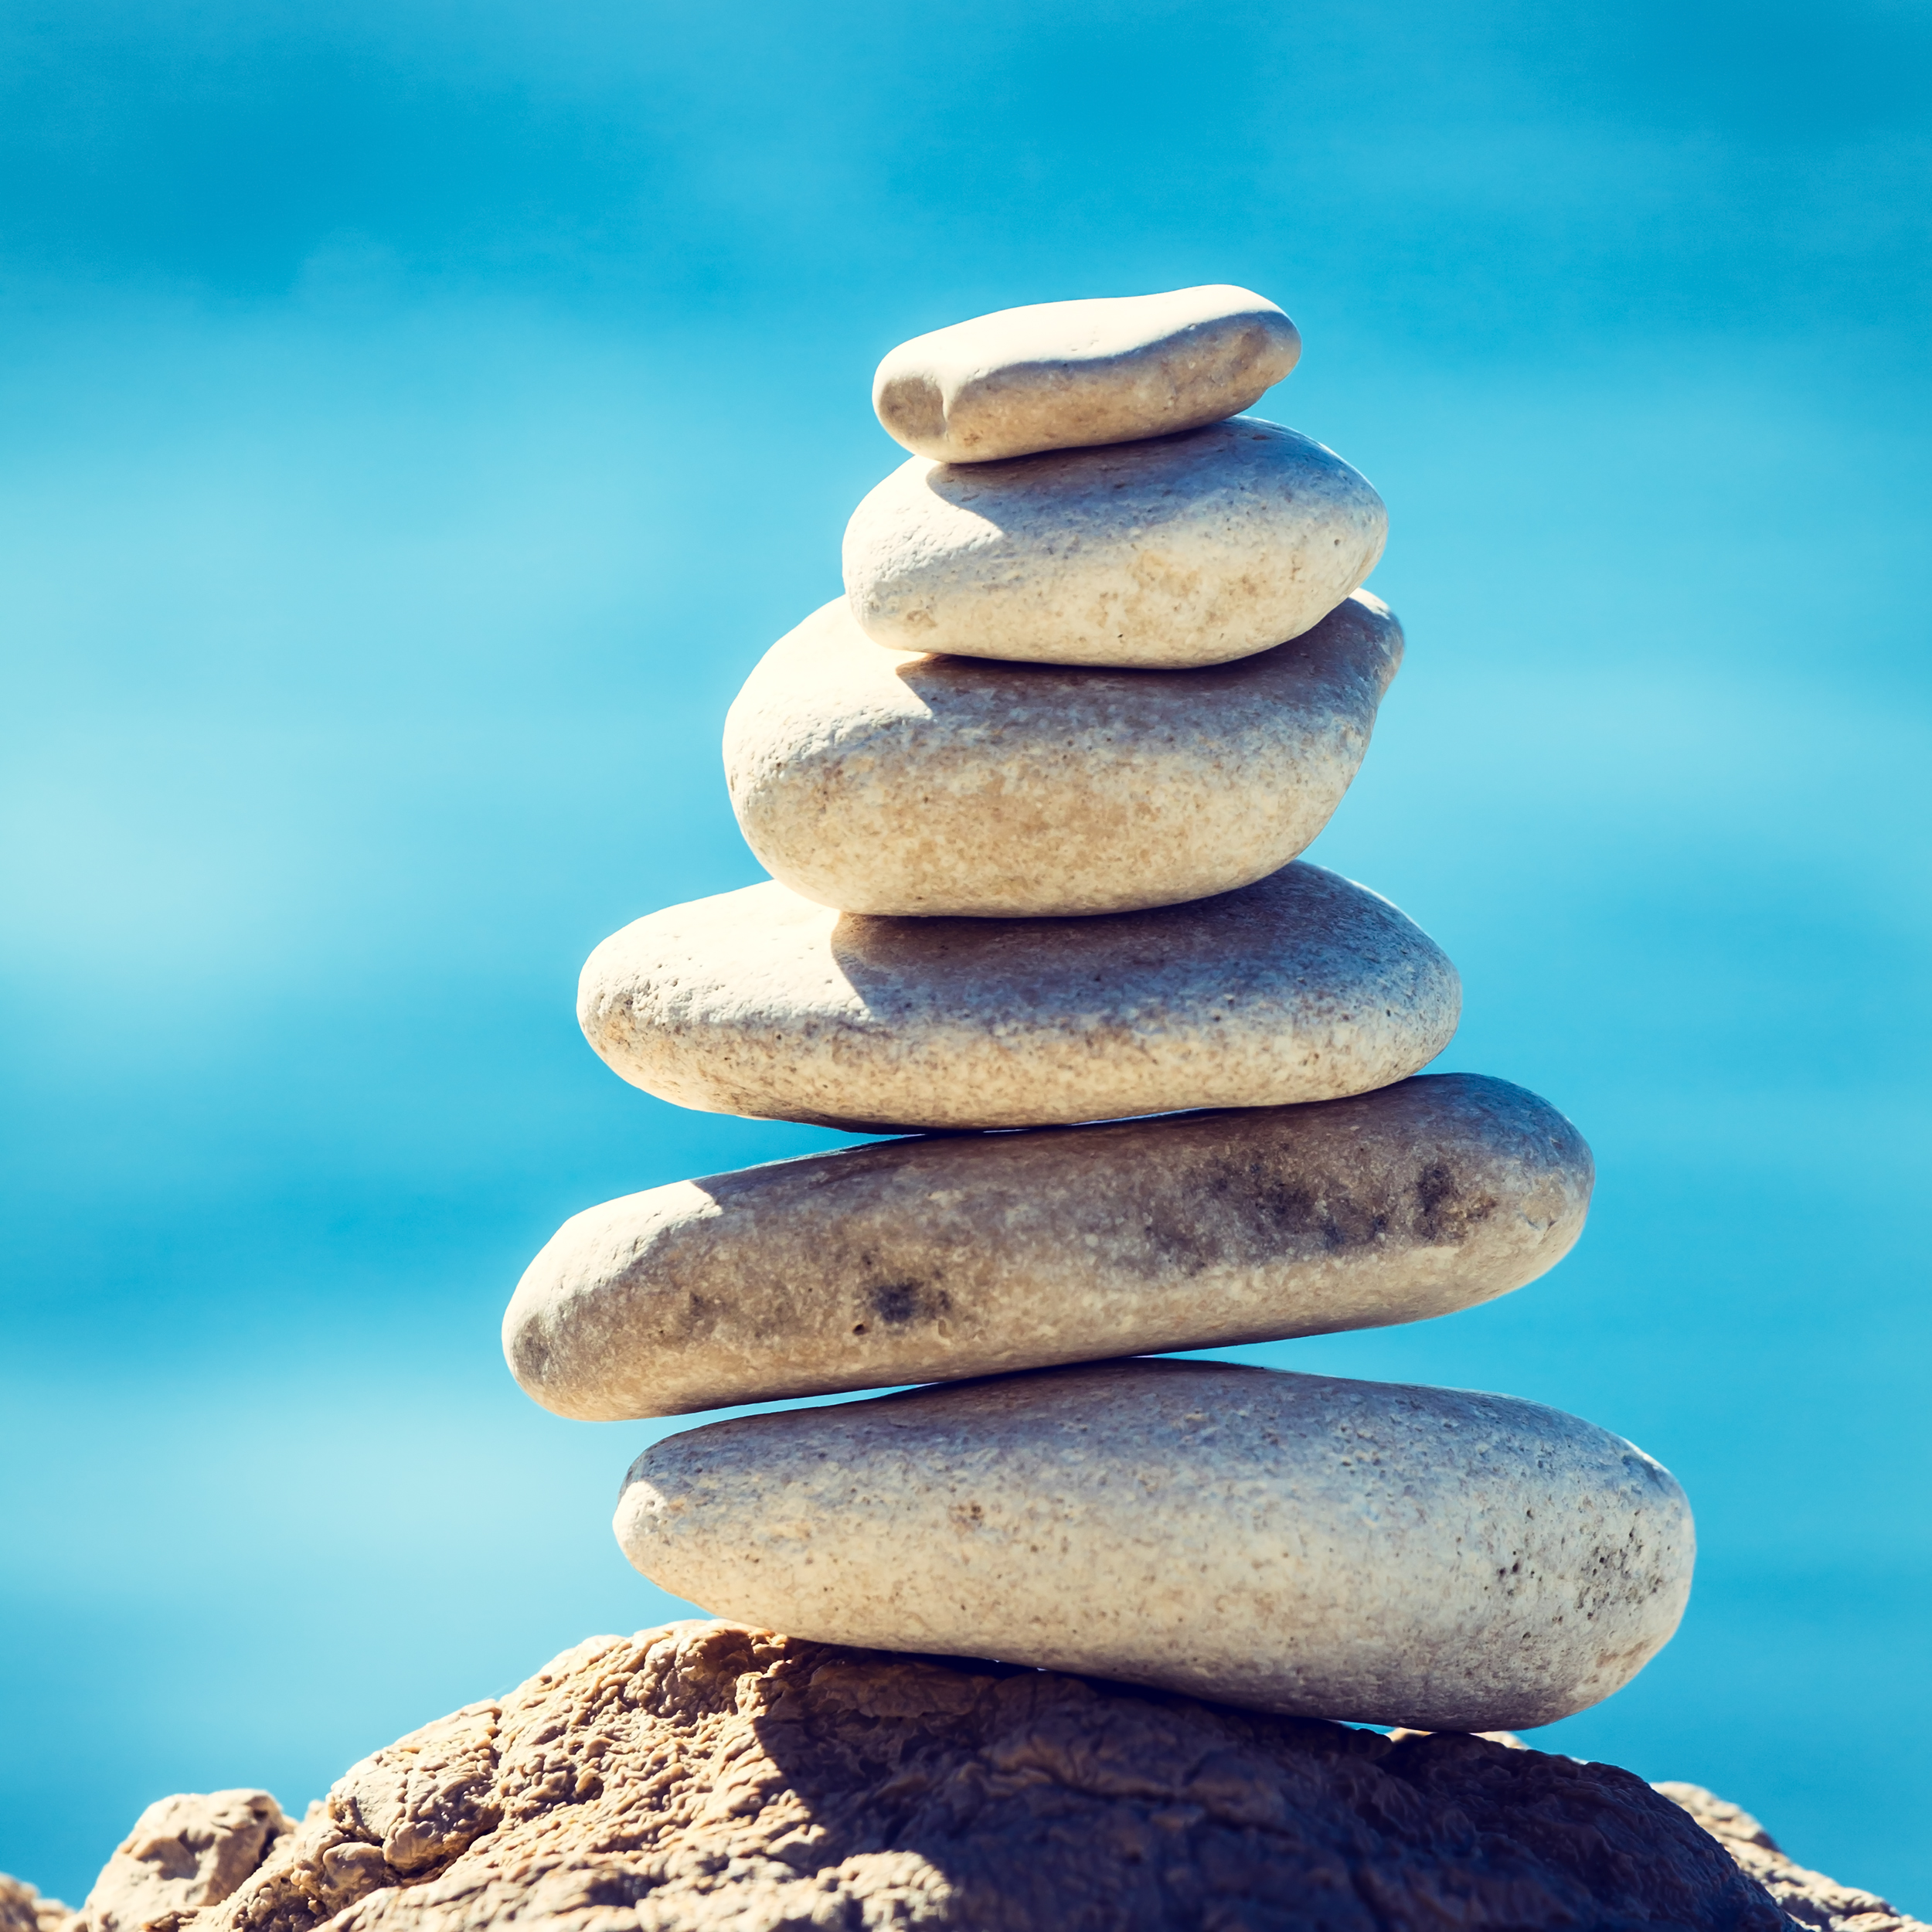 Six gray rocks stacked together with a blue background